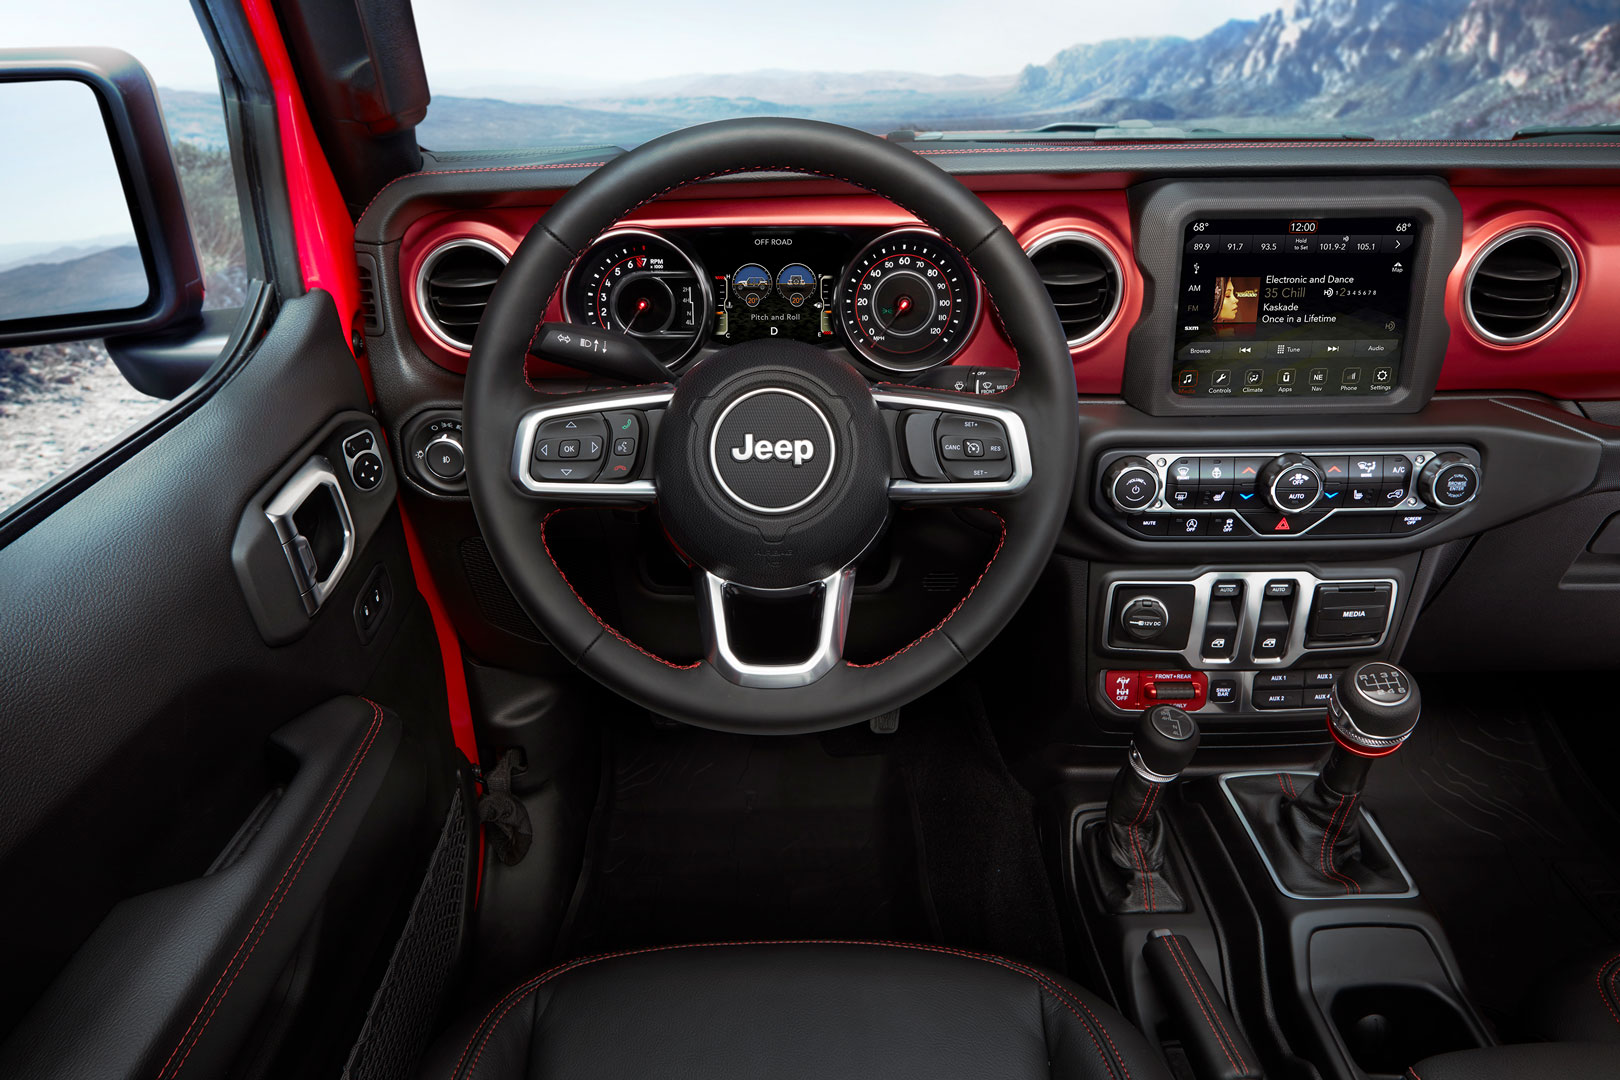 The new Wrangler's exterior dimensions have grown, but interior space is relatively unchanged. What has changed, however, are the LED instruments and touch screens.